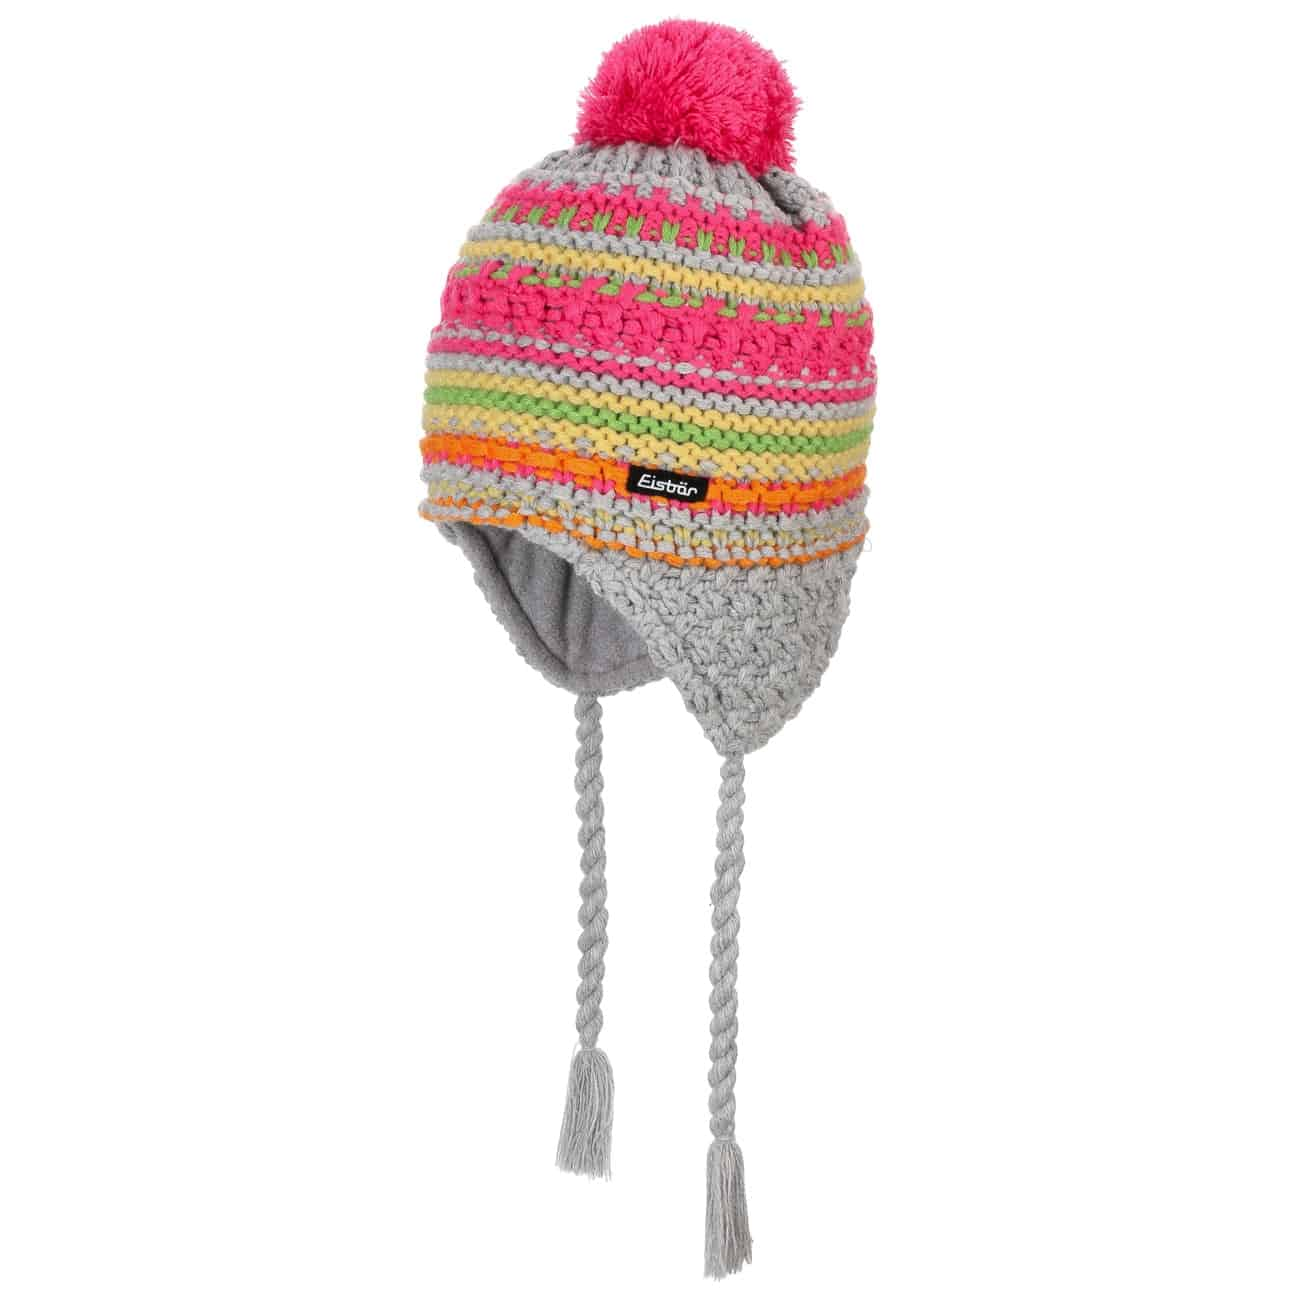 Bonnet à Pompon Colour Stripes by Eisbär  bonnet protège oreilles